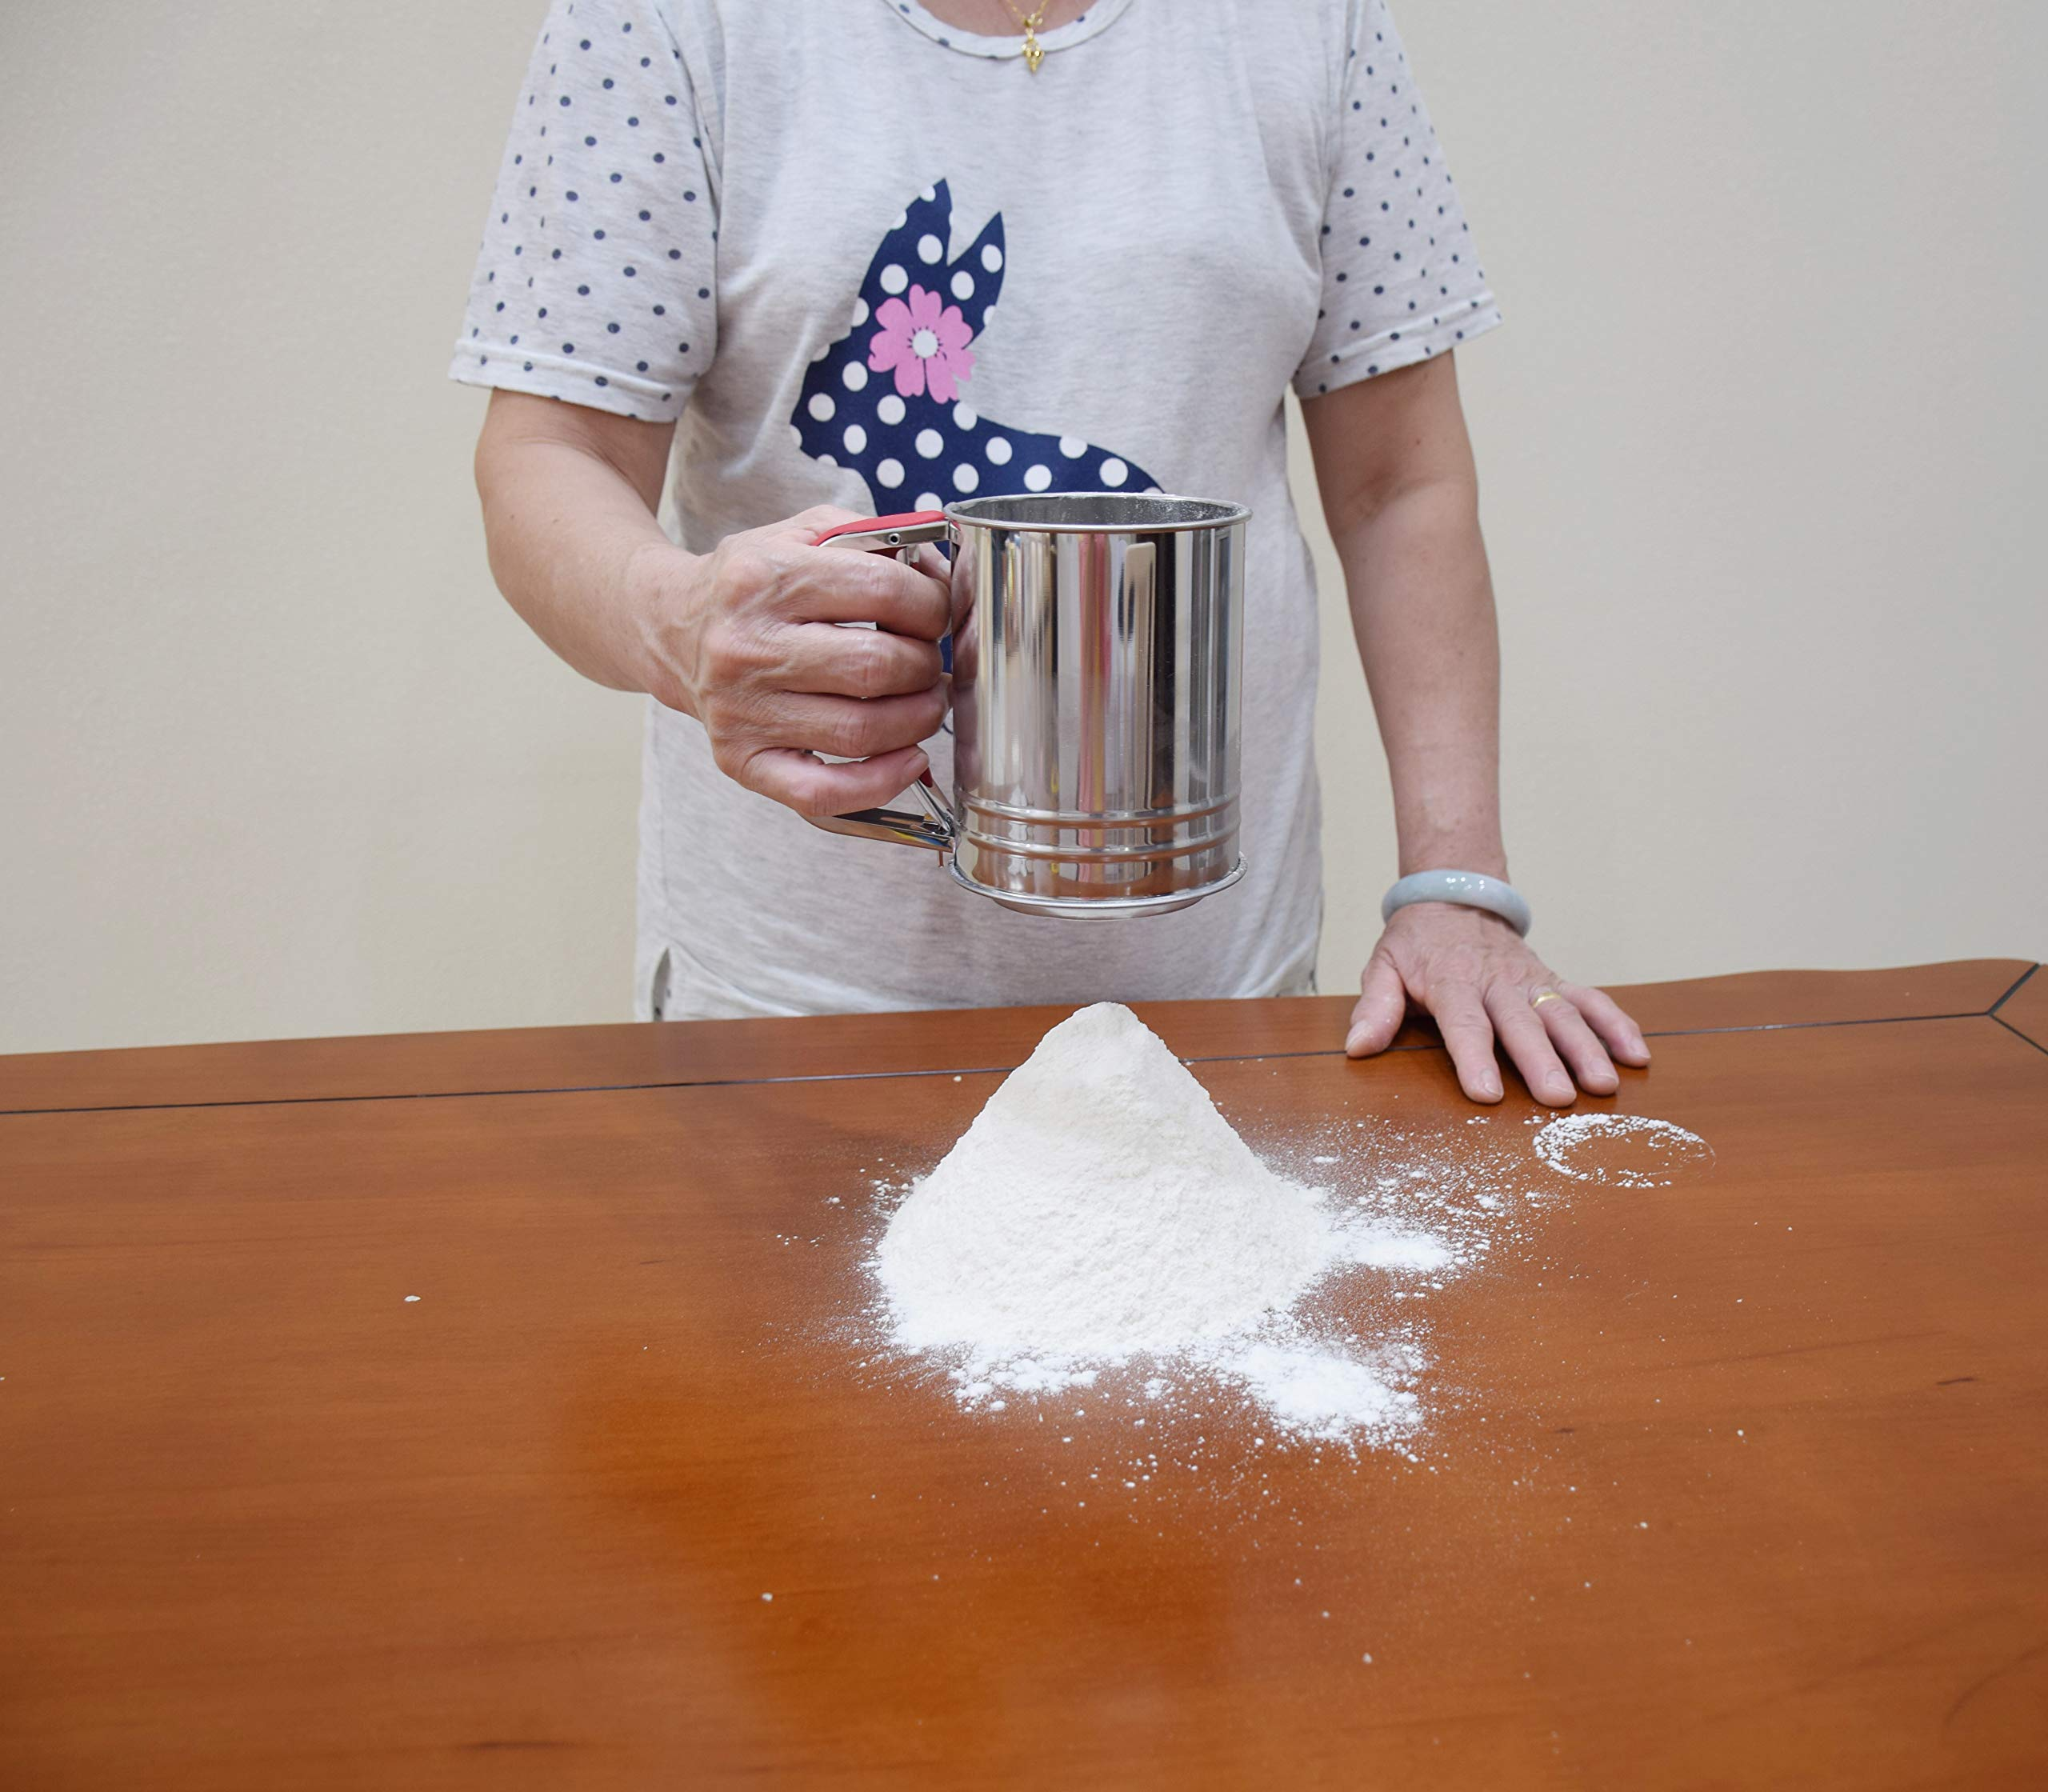 Kitchen aid Flour Sifter One Hand with 3 sifter meshes 3 Cup for Baking by YongLy (Image #4)